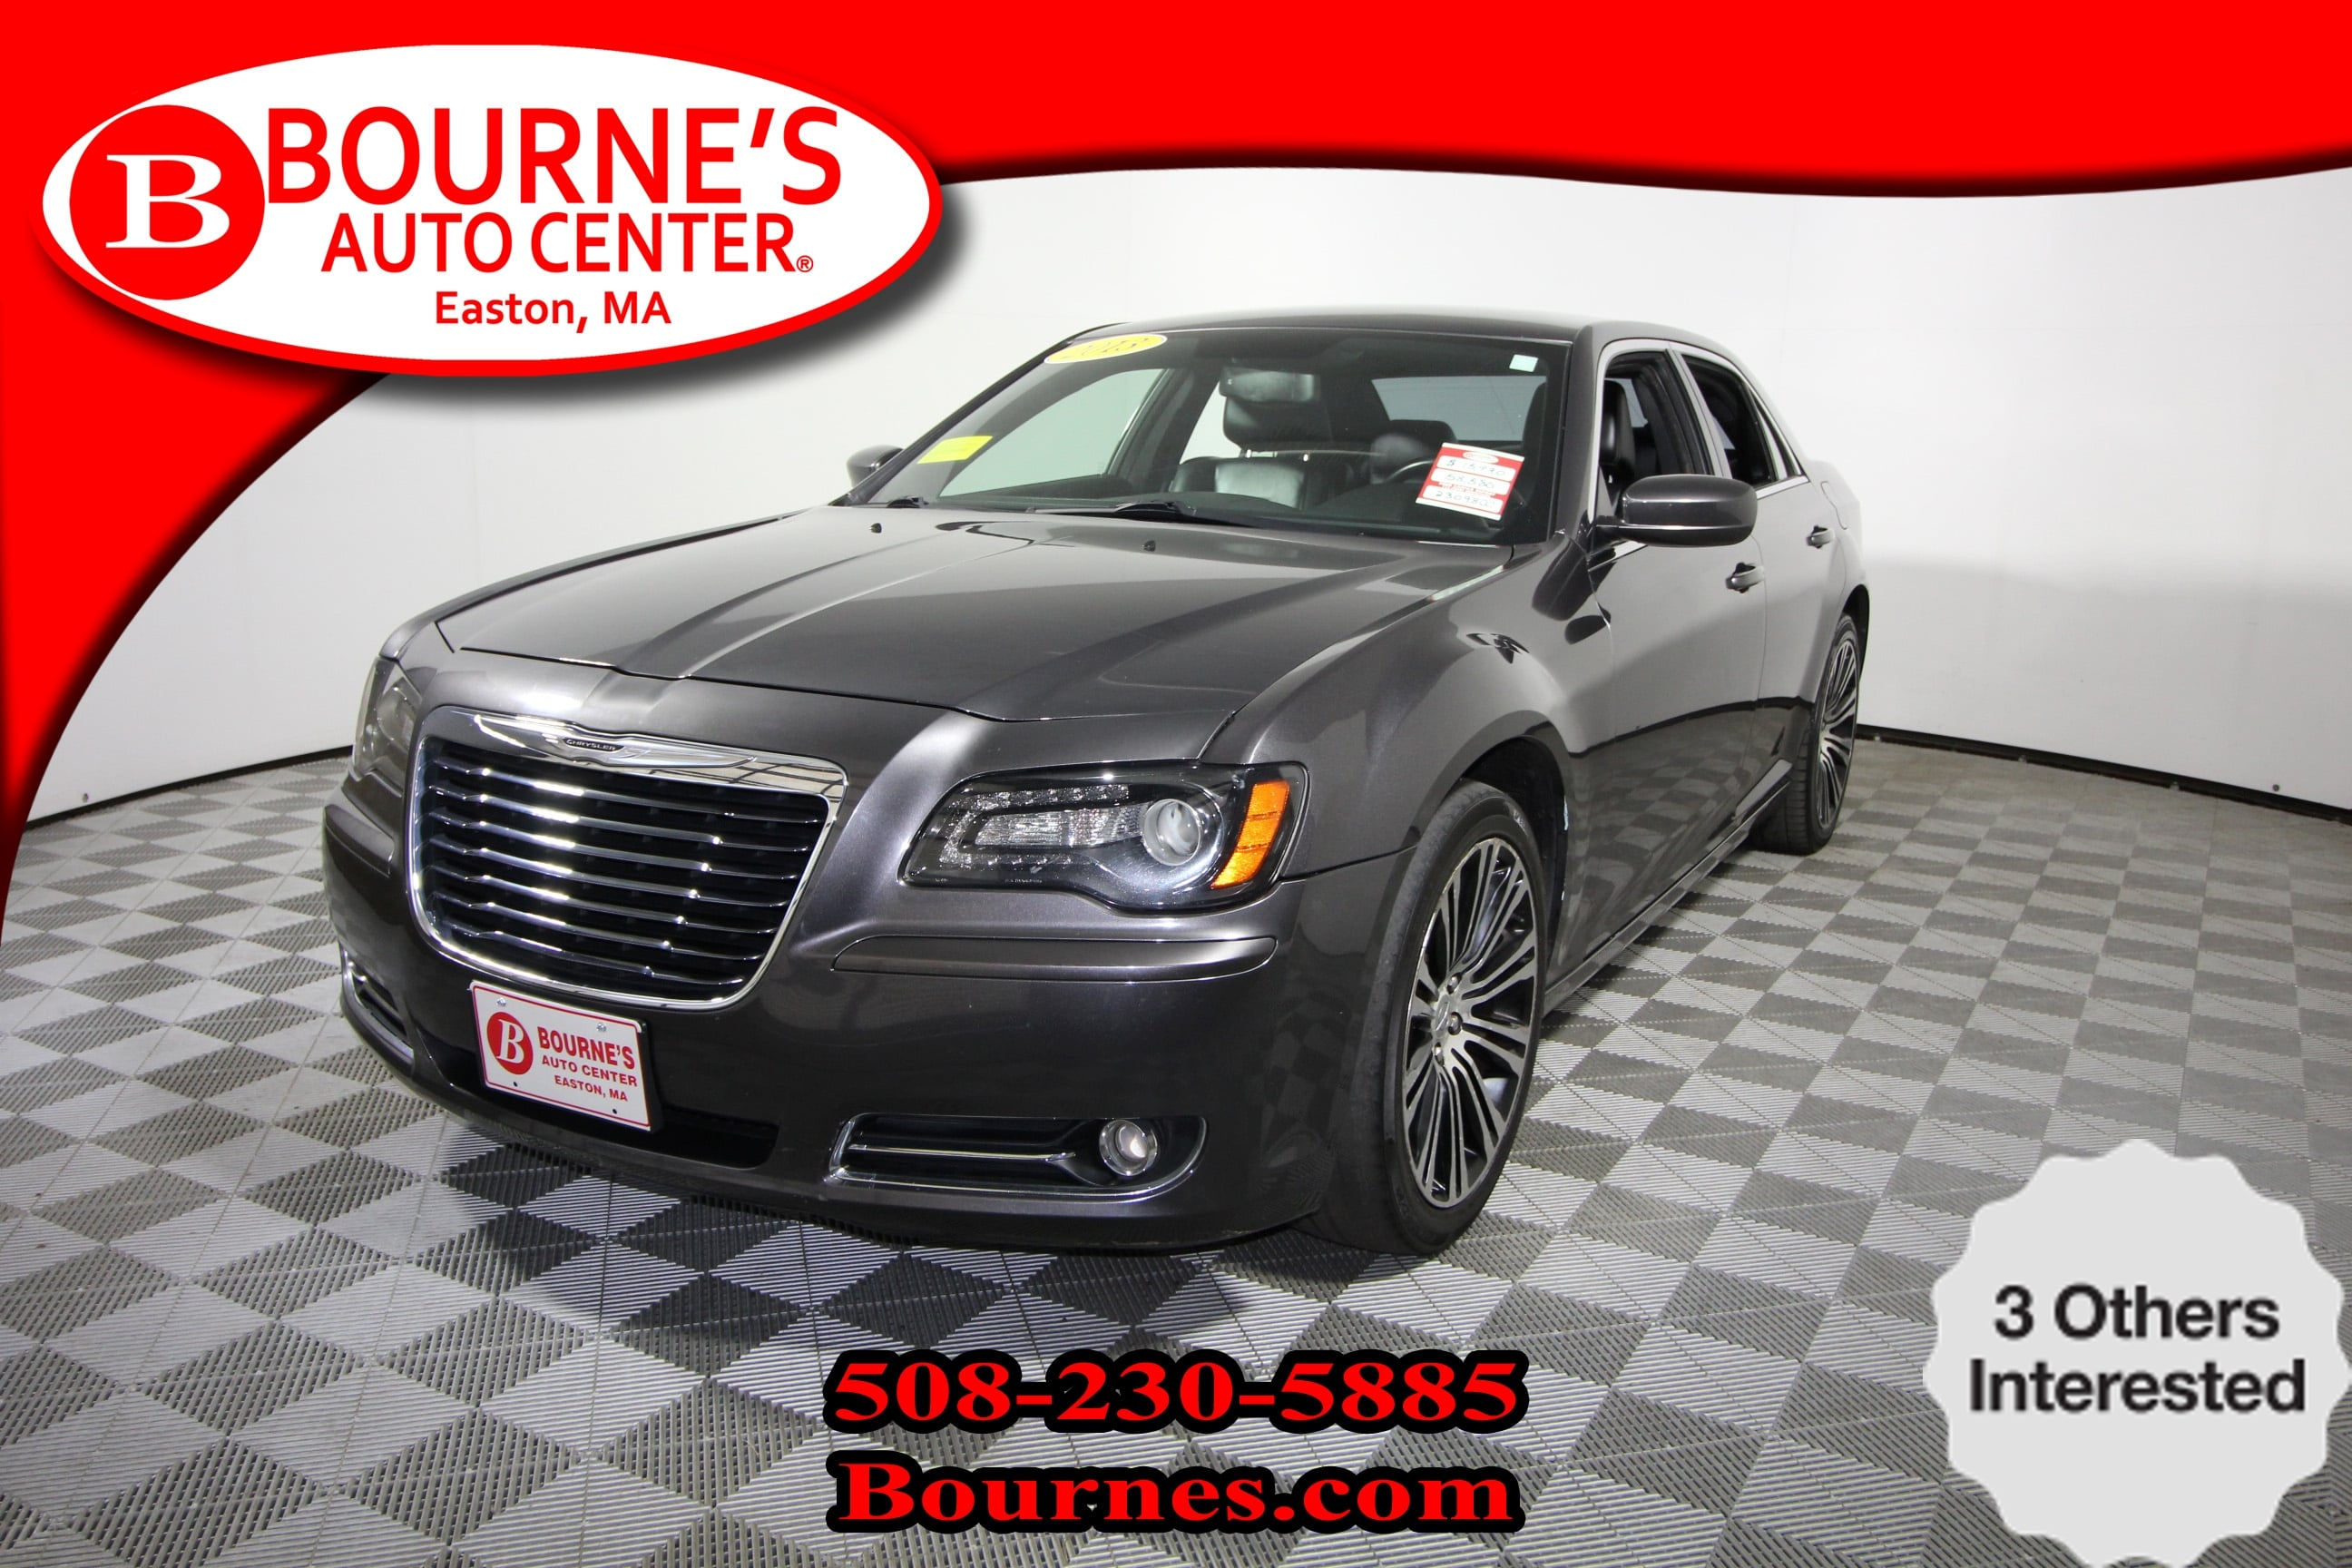 Photo 2013 Chrysler 300 S w Navigation, Leather, Heated Front Seats, And